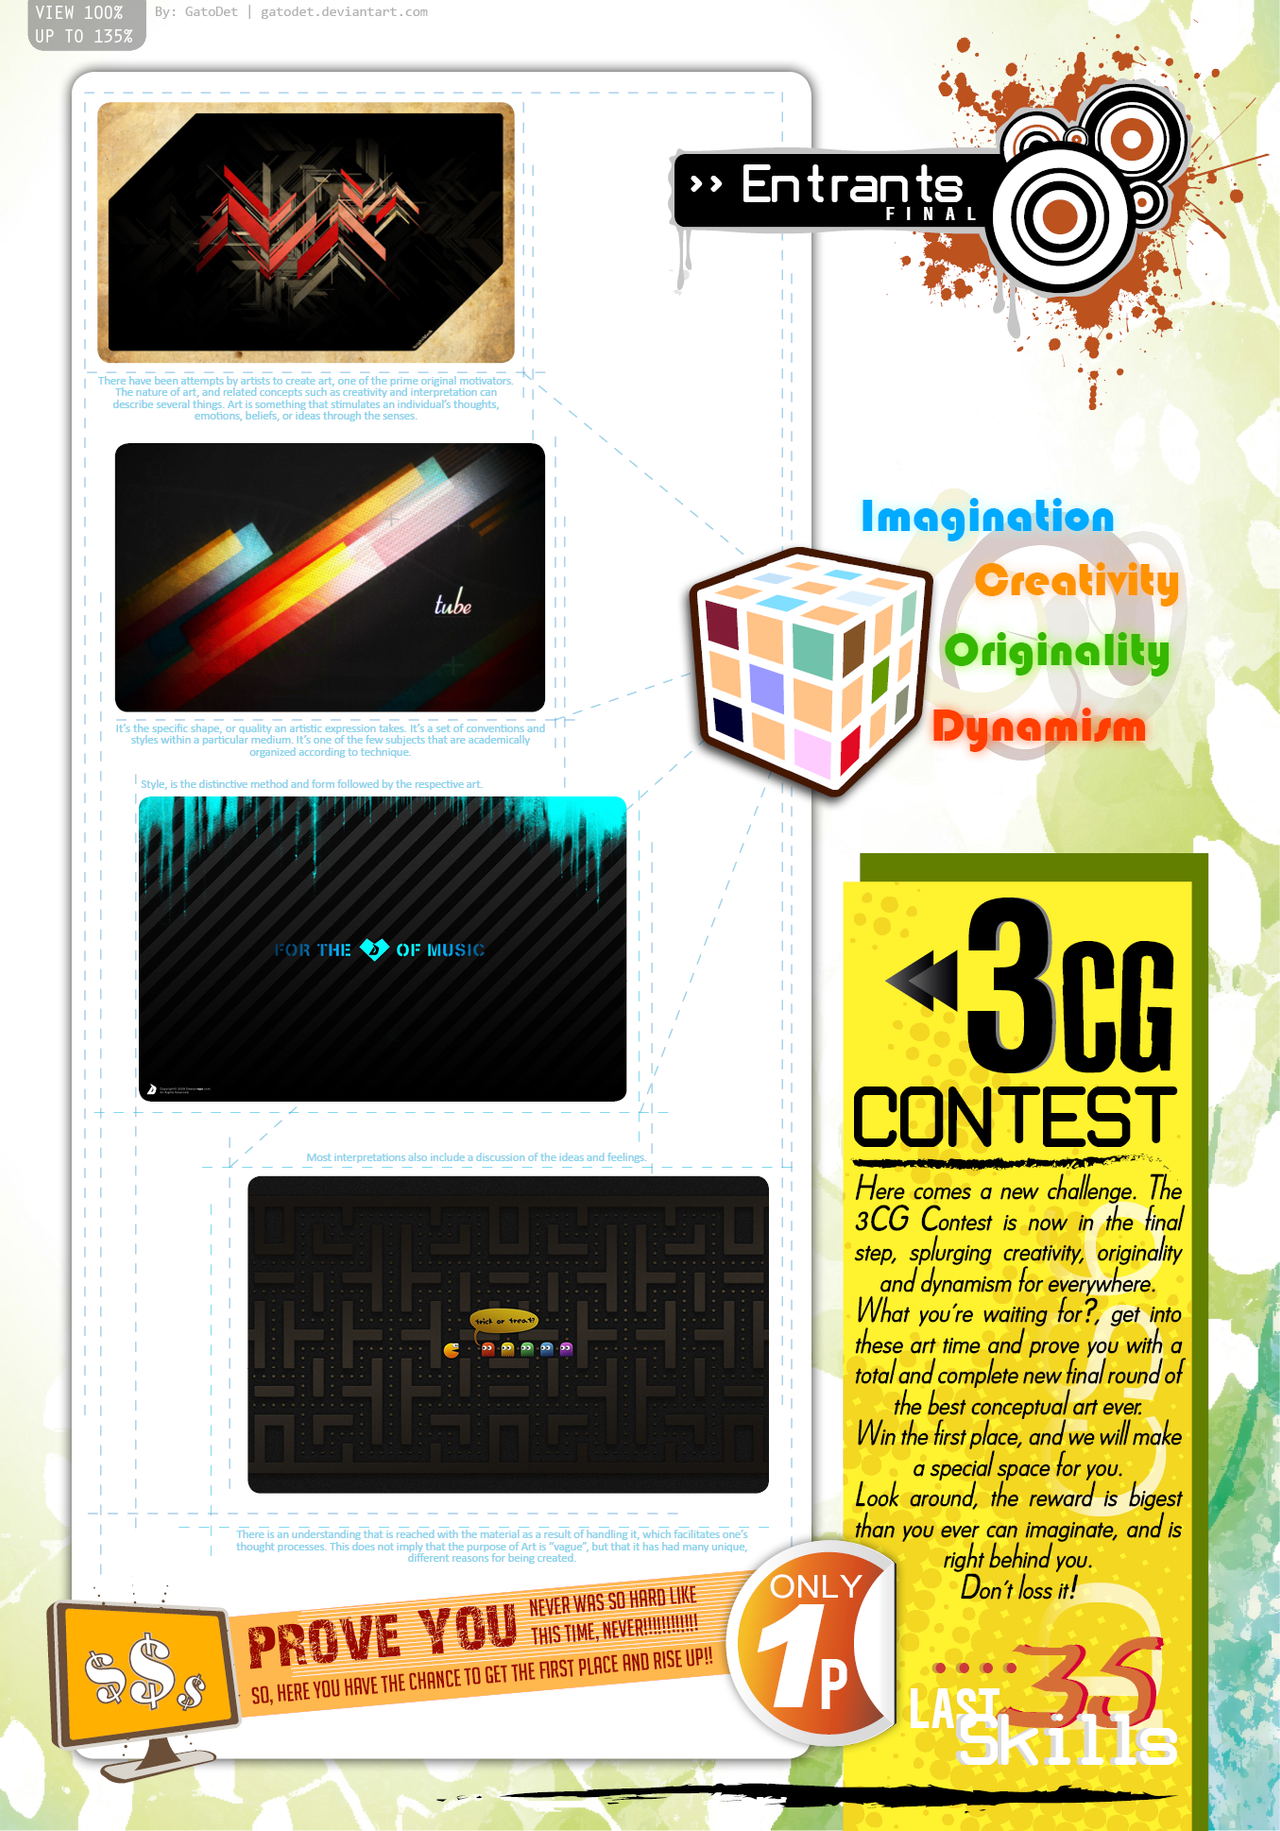 3cg contest edesign by gatodet on deviantart for Edesign login